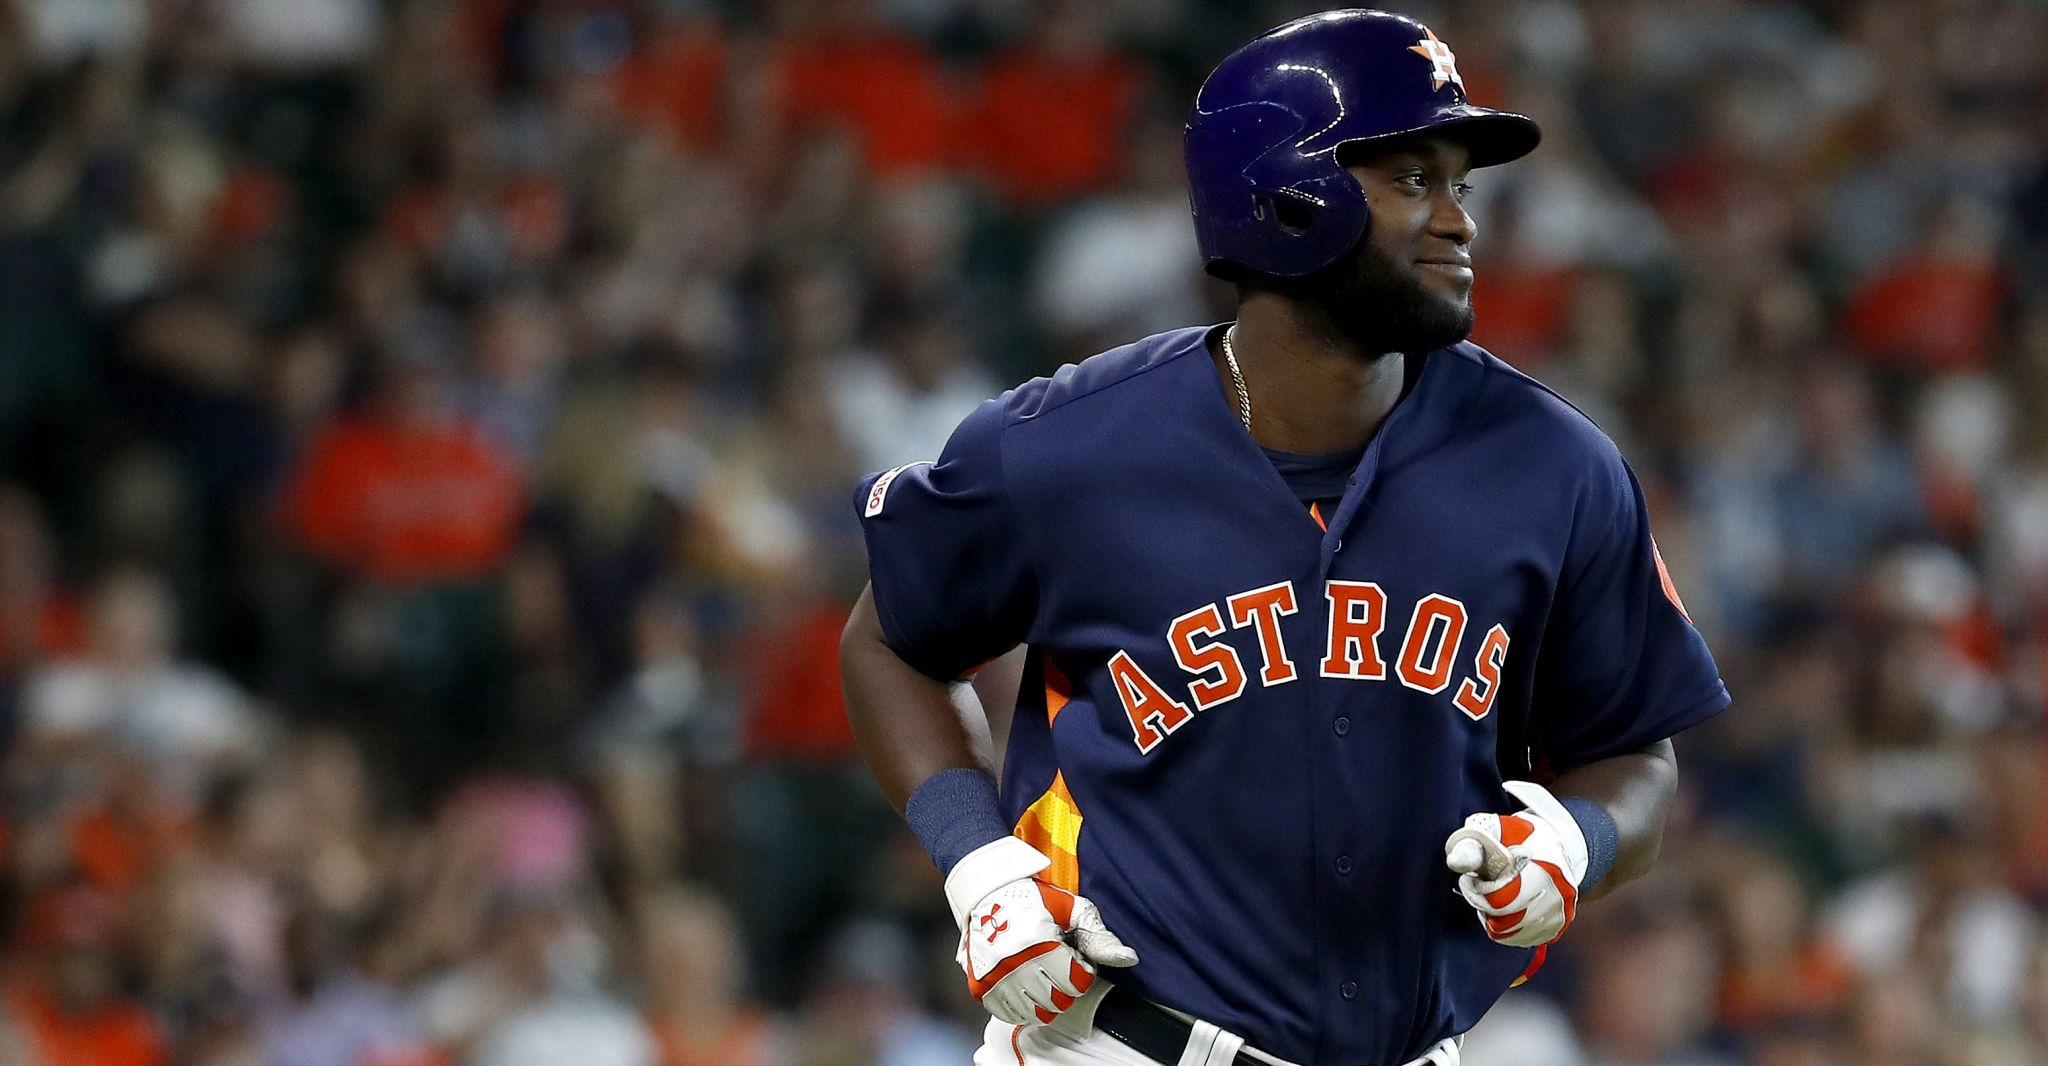 Astros' Yordan Álvarez will not start during Rockies series